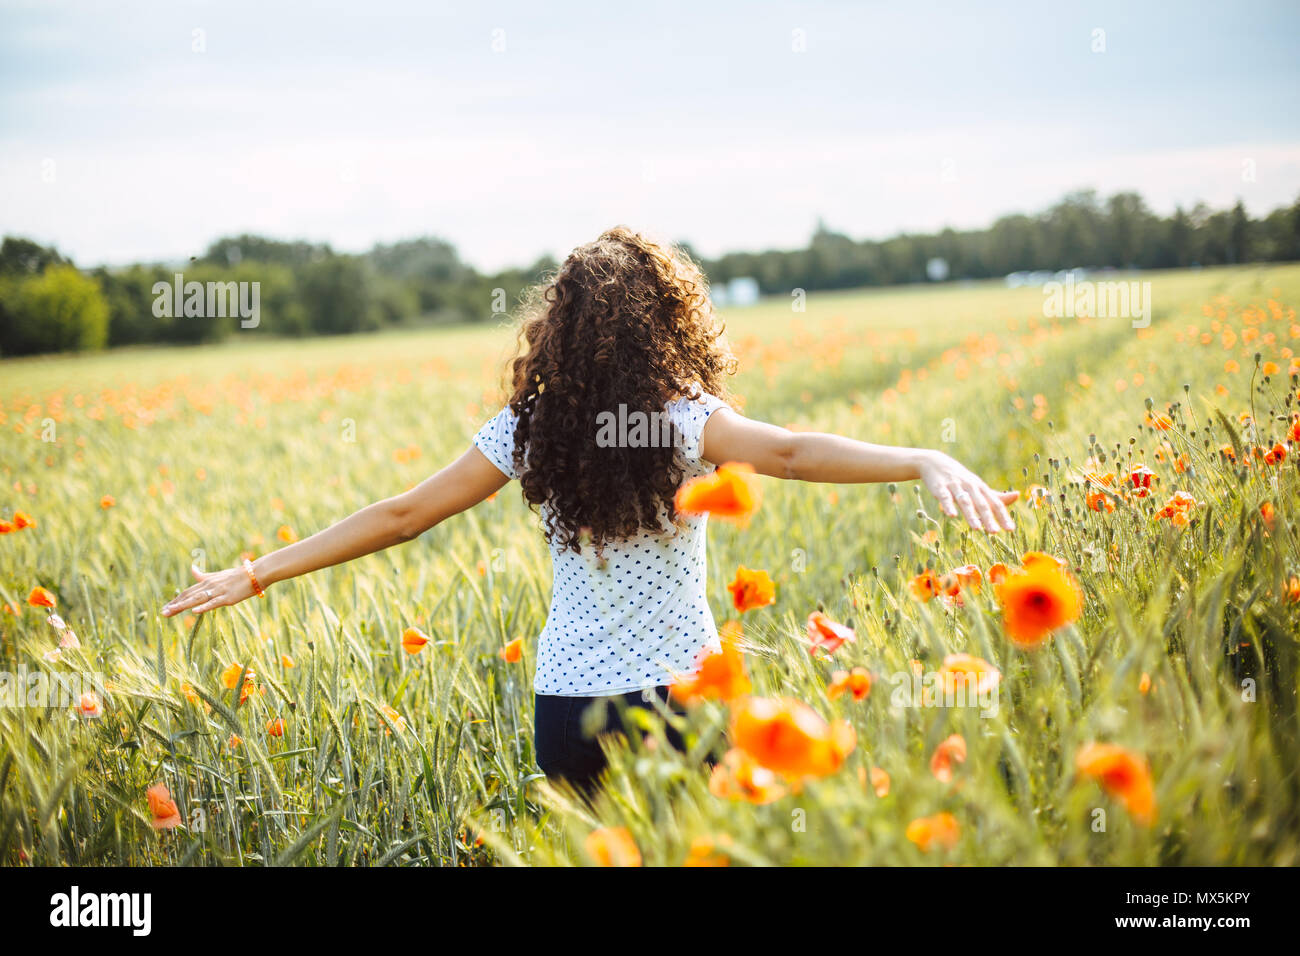 young curly carefree woman running through a field of wildflowers on a summer day - Stock Image